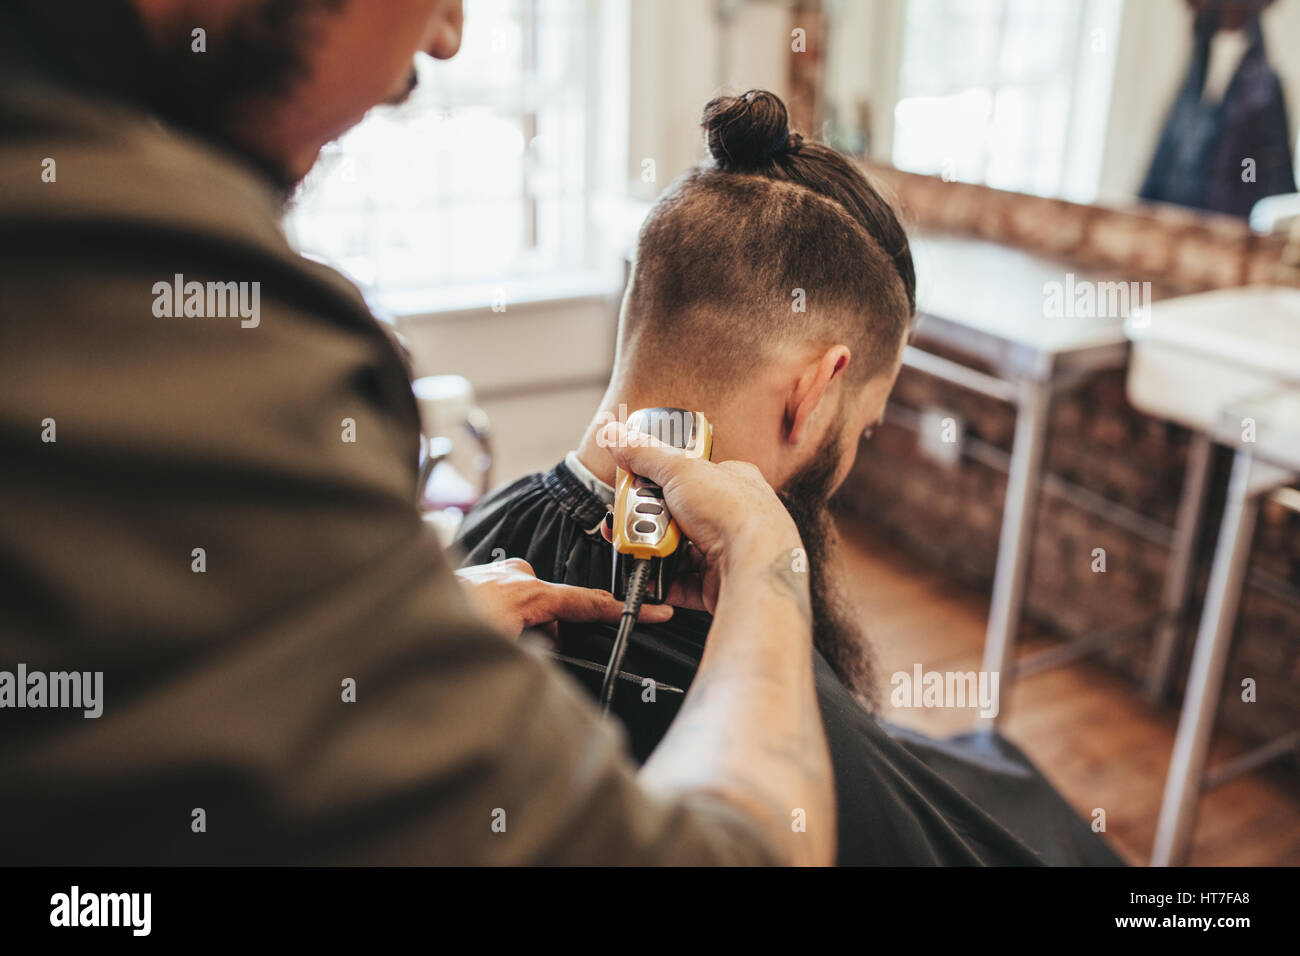 Man getting haircut by barber at salon. Hairdresser cutting hair of client with hair trimmer machine. - Stock Image